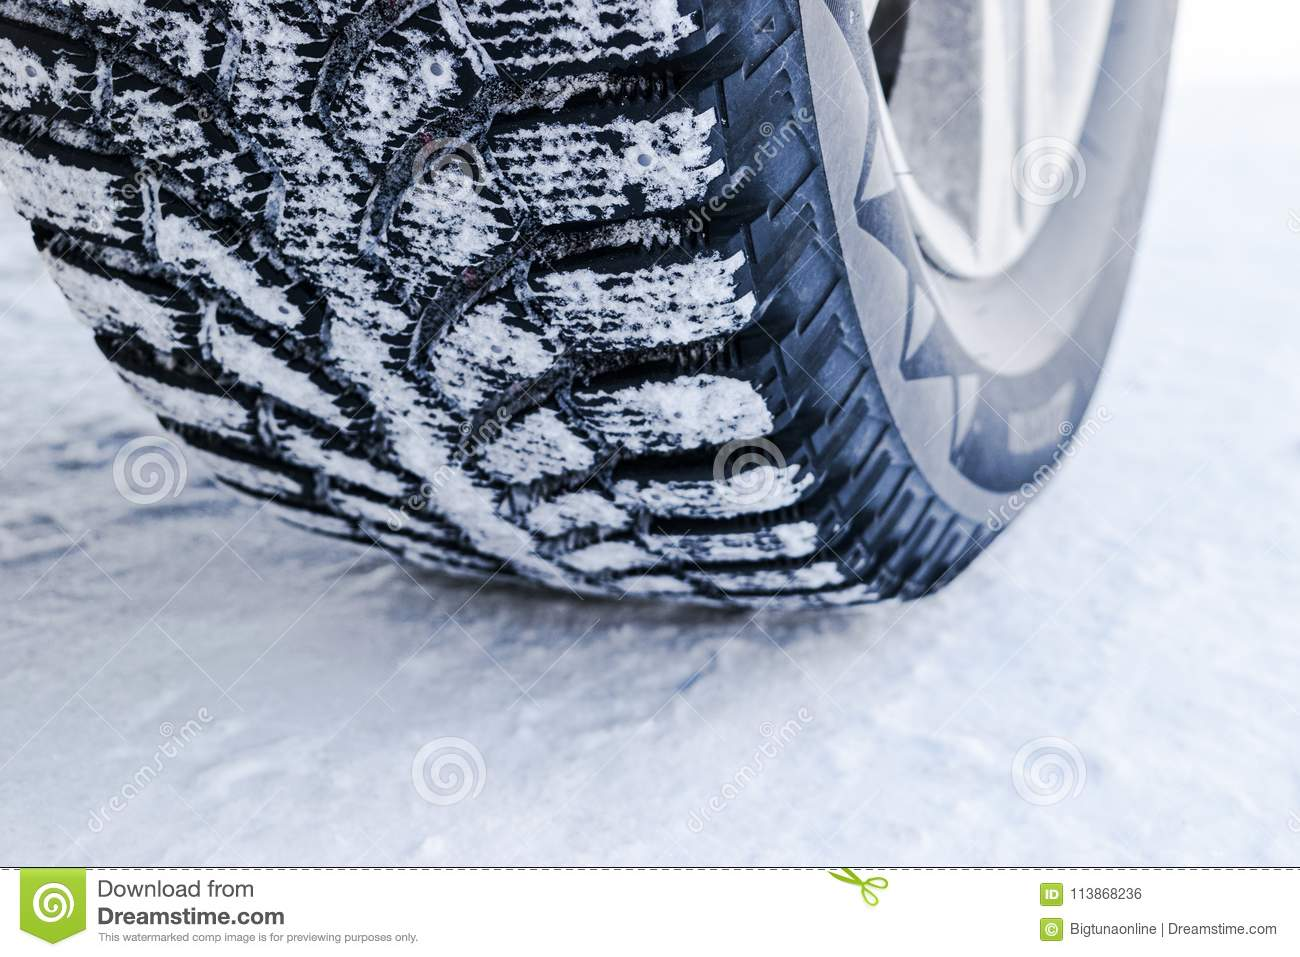 The car tire in the snow close up. Car tracks on the snow. Traces of the car in the snow. Winter tires. Tyres covered with snow at